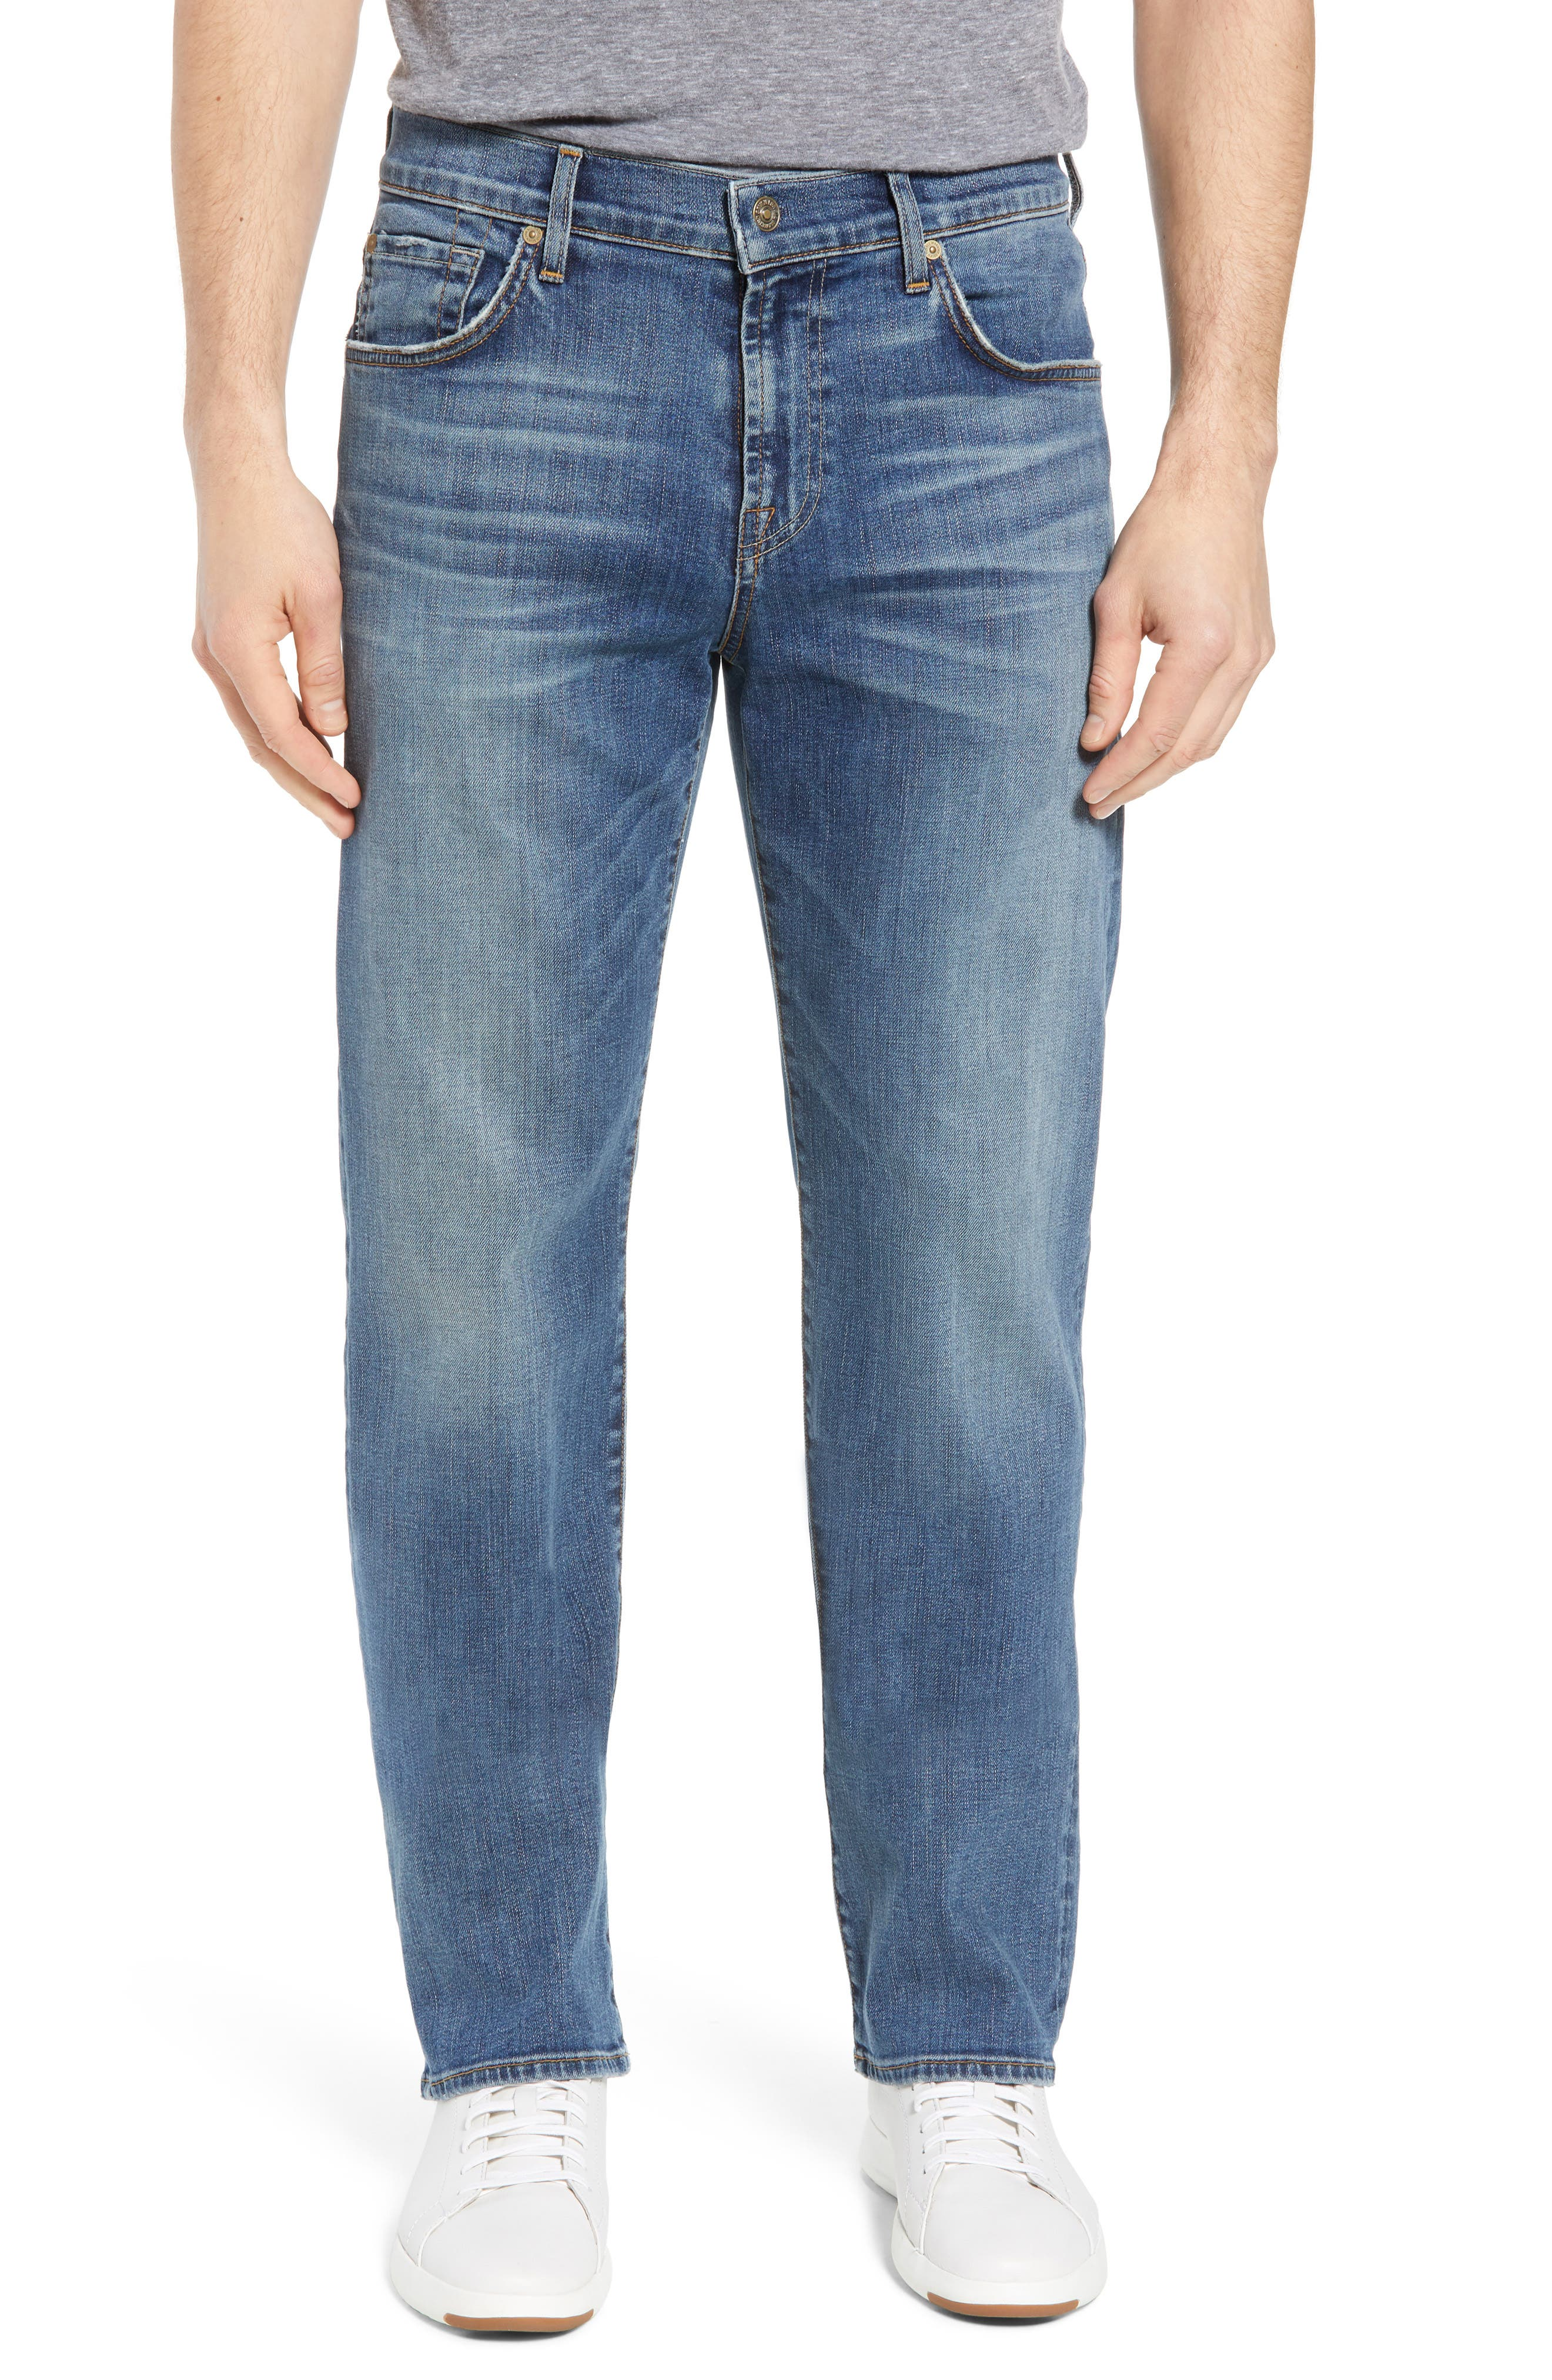 Luxe Performance - Austyn Relaxed Fit Jeans,                         Main,                         color, Bedrock